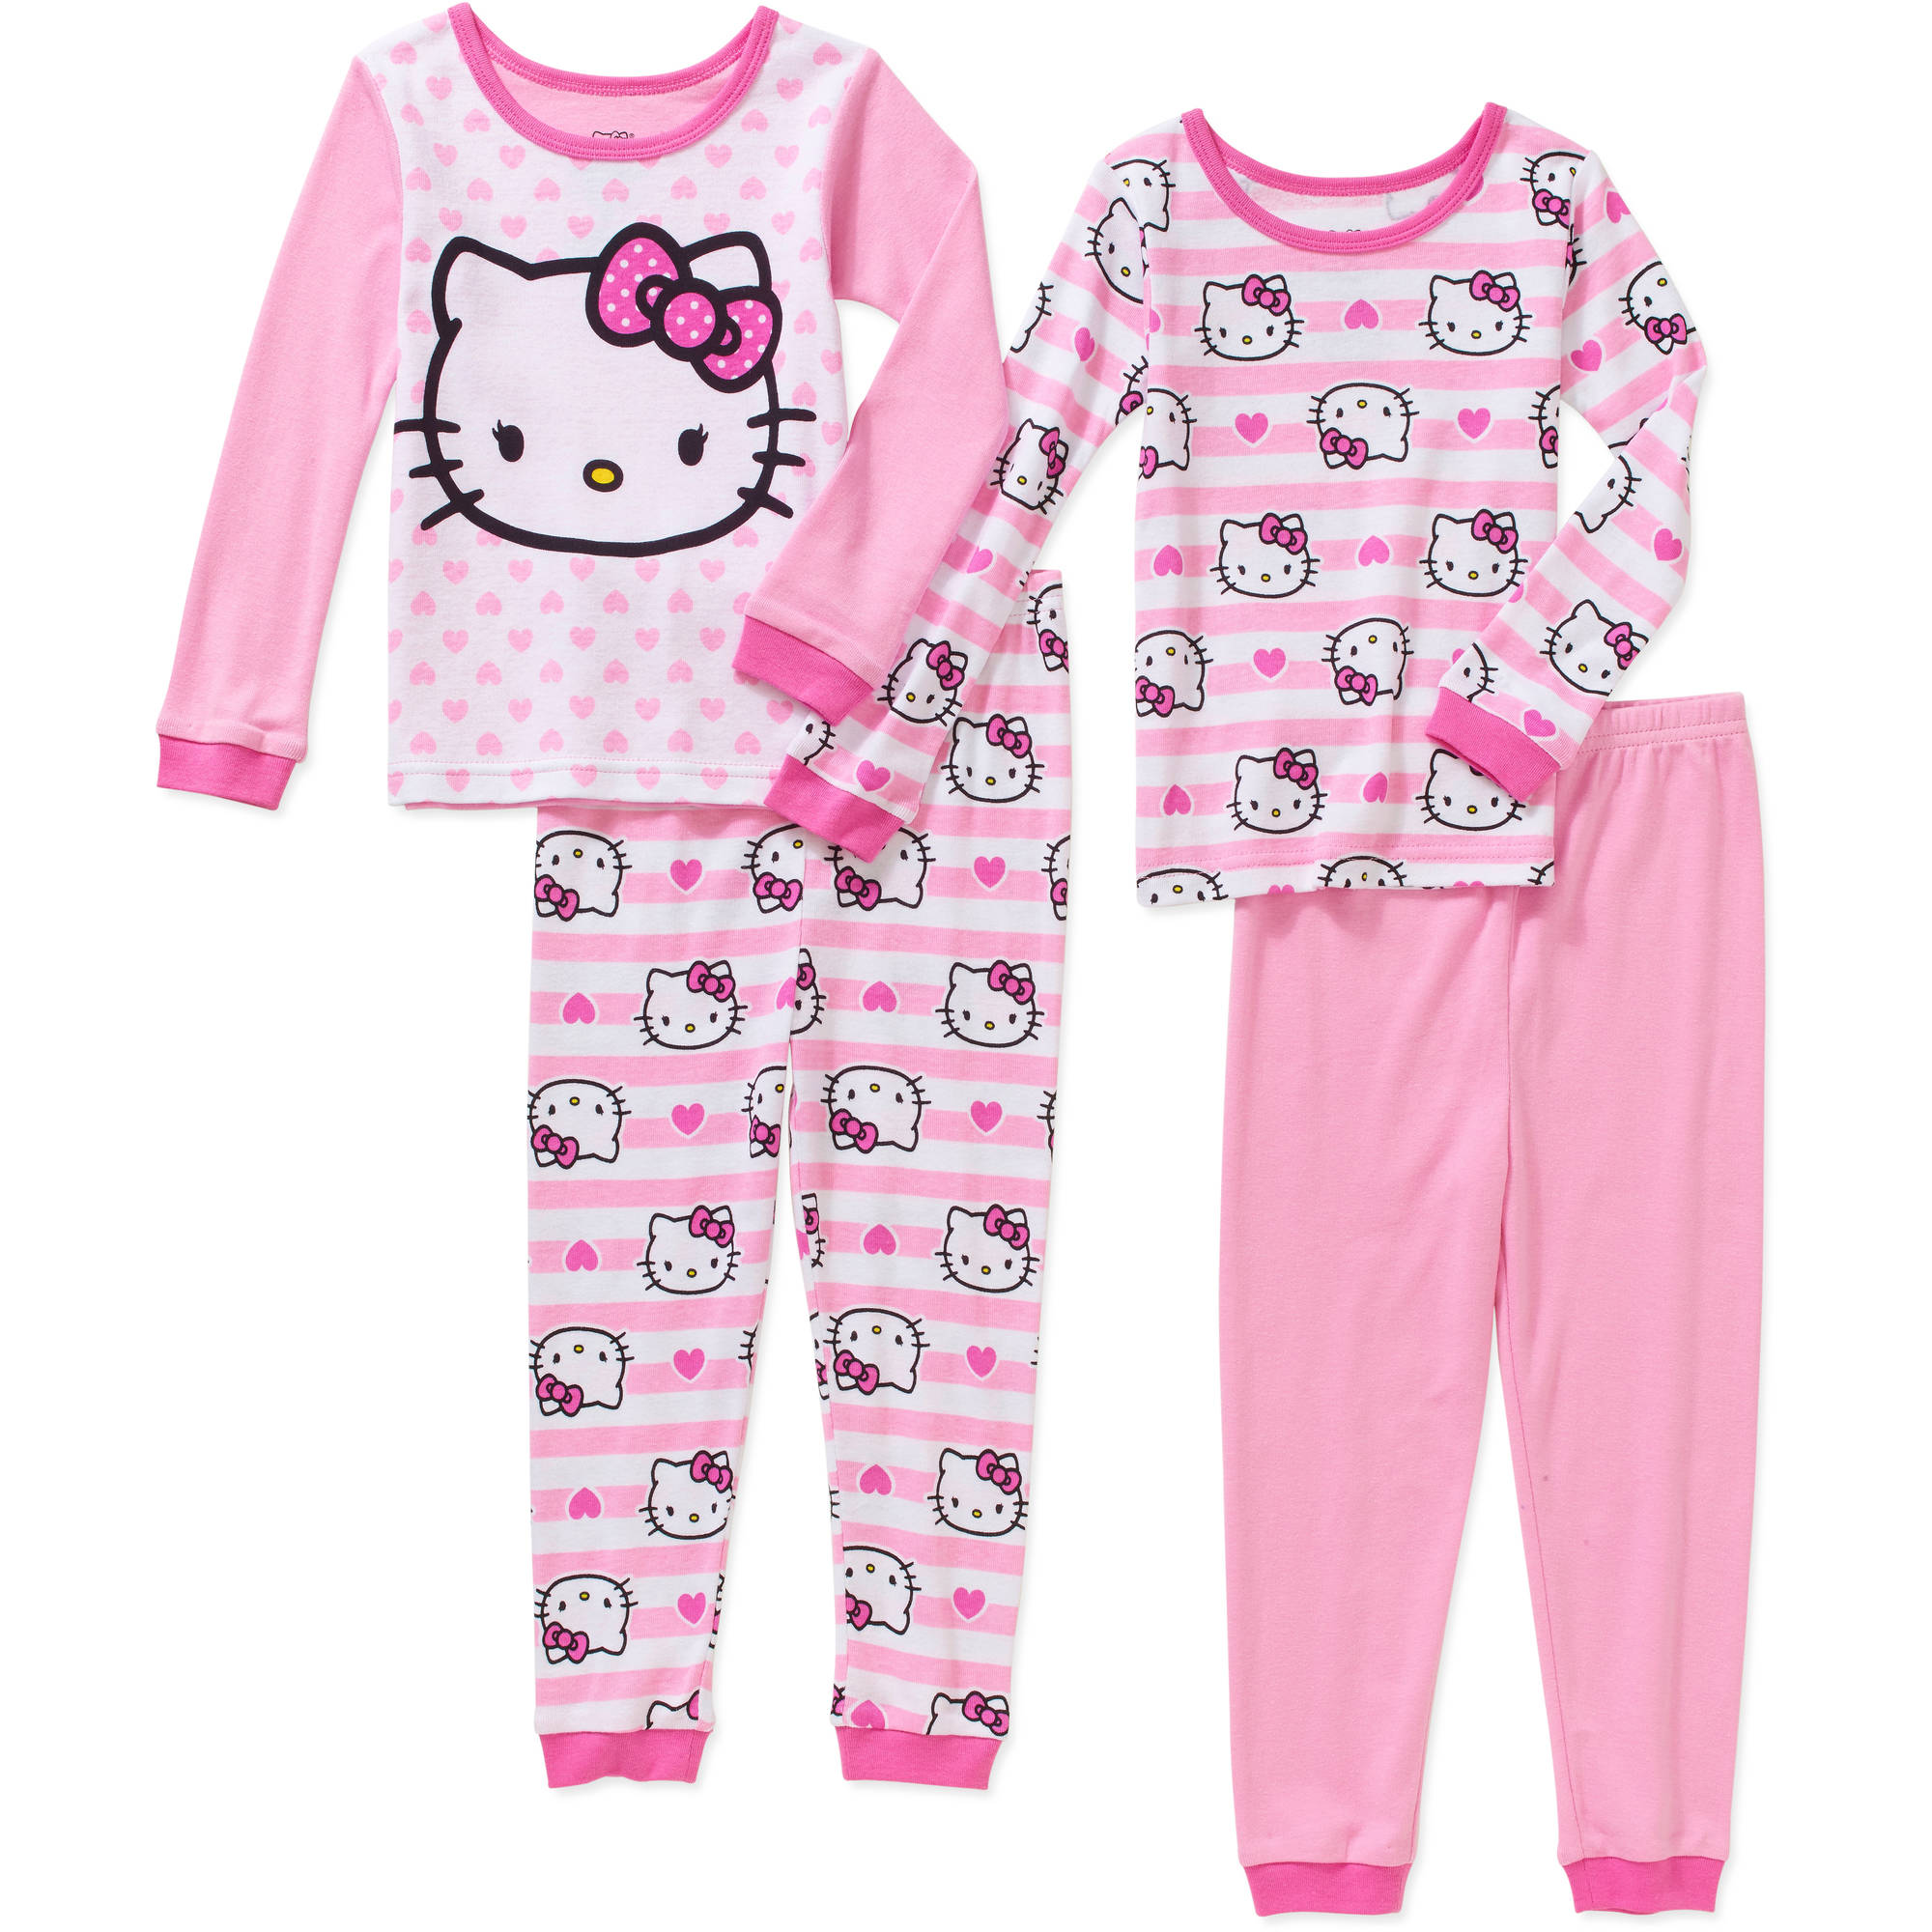 Hello Kitty Toddler Girl Cotton Tight Fit Pajamas 4pc Set